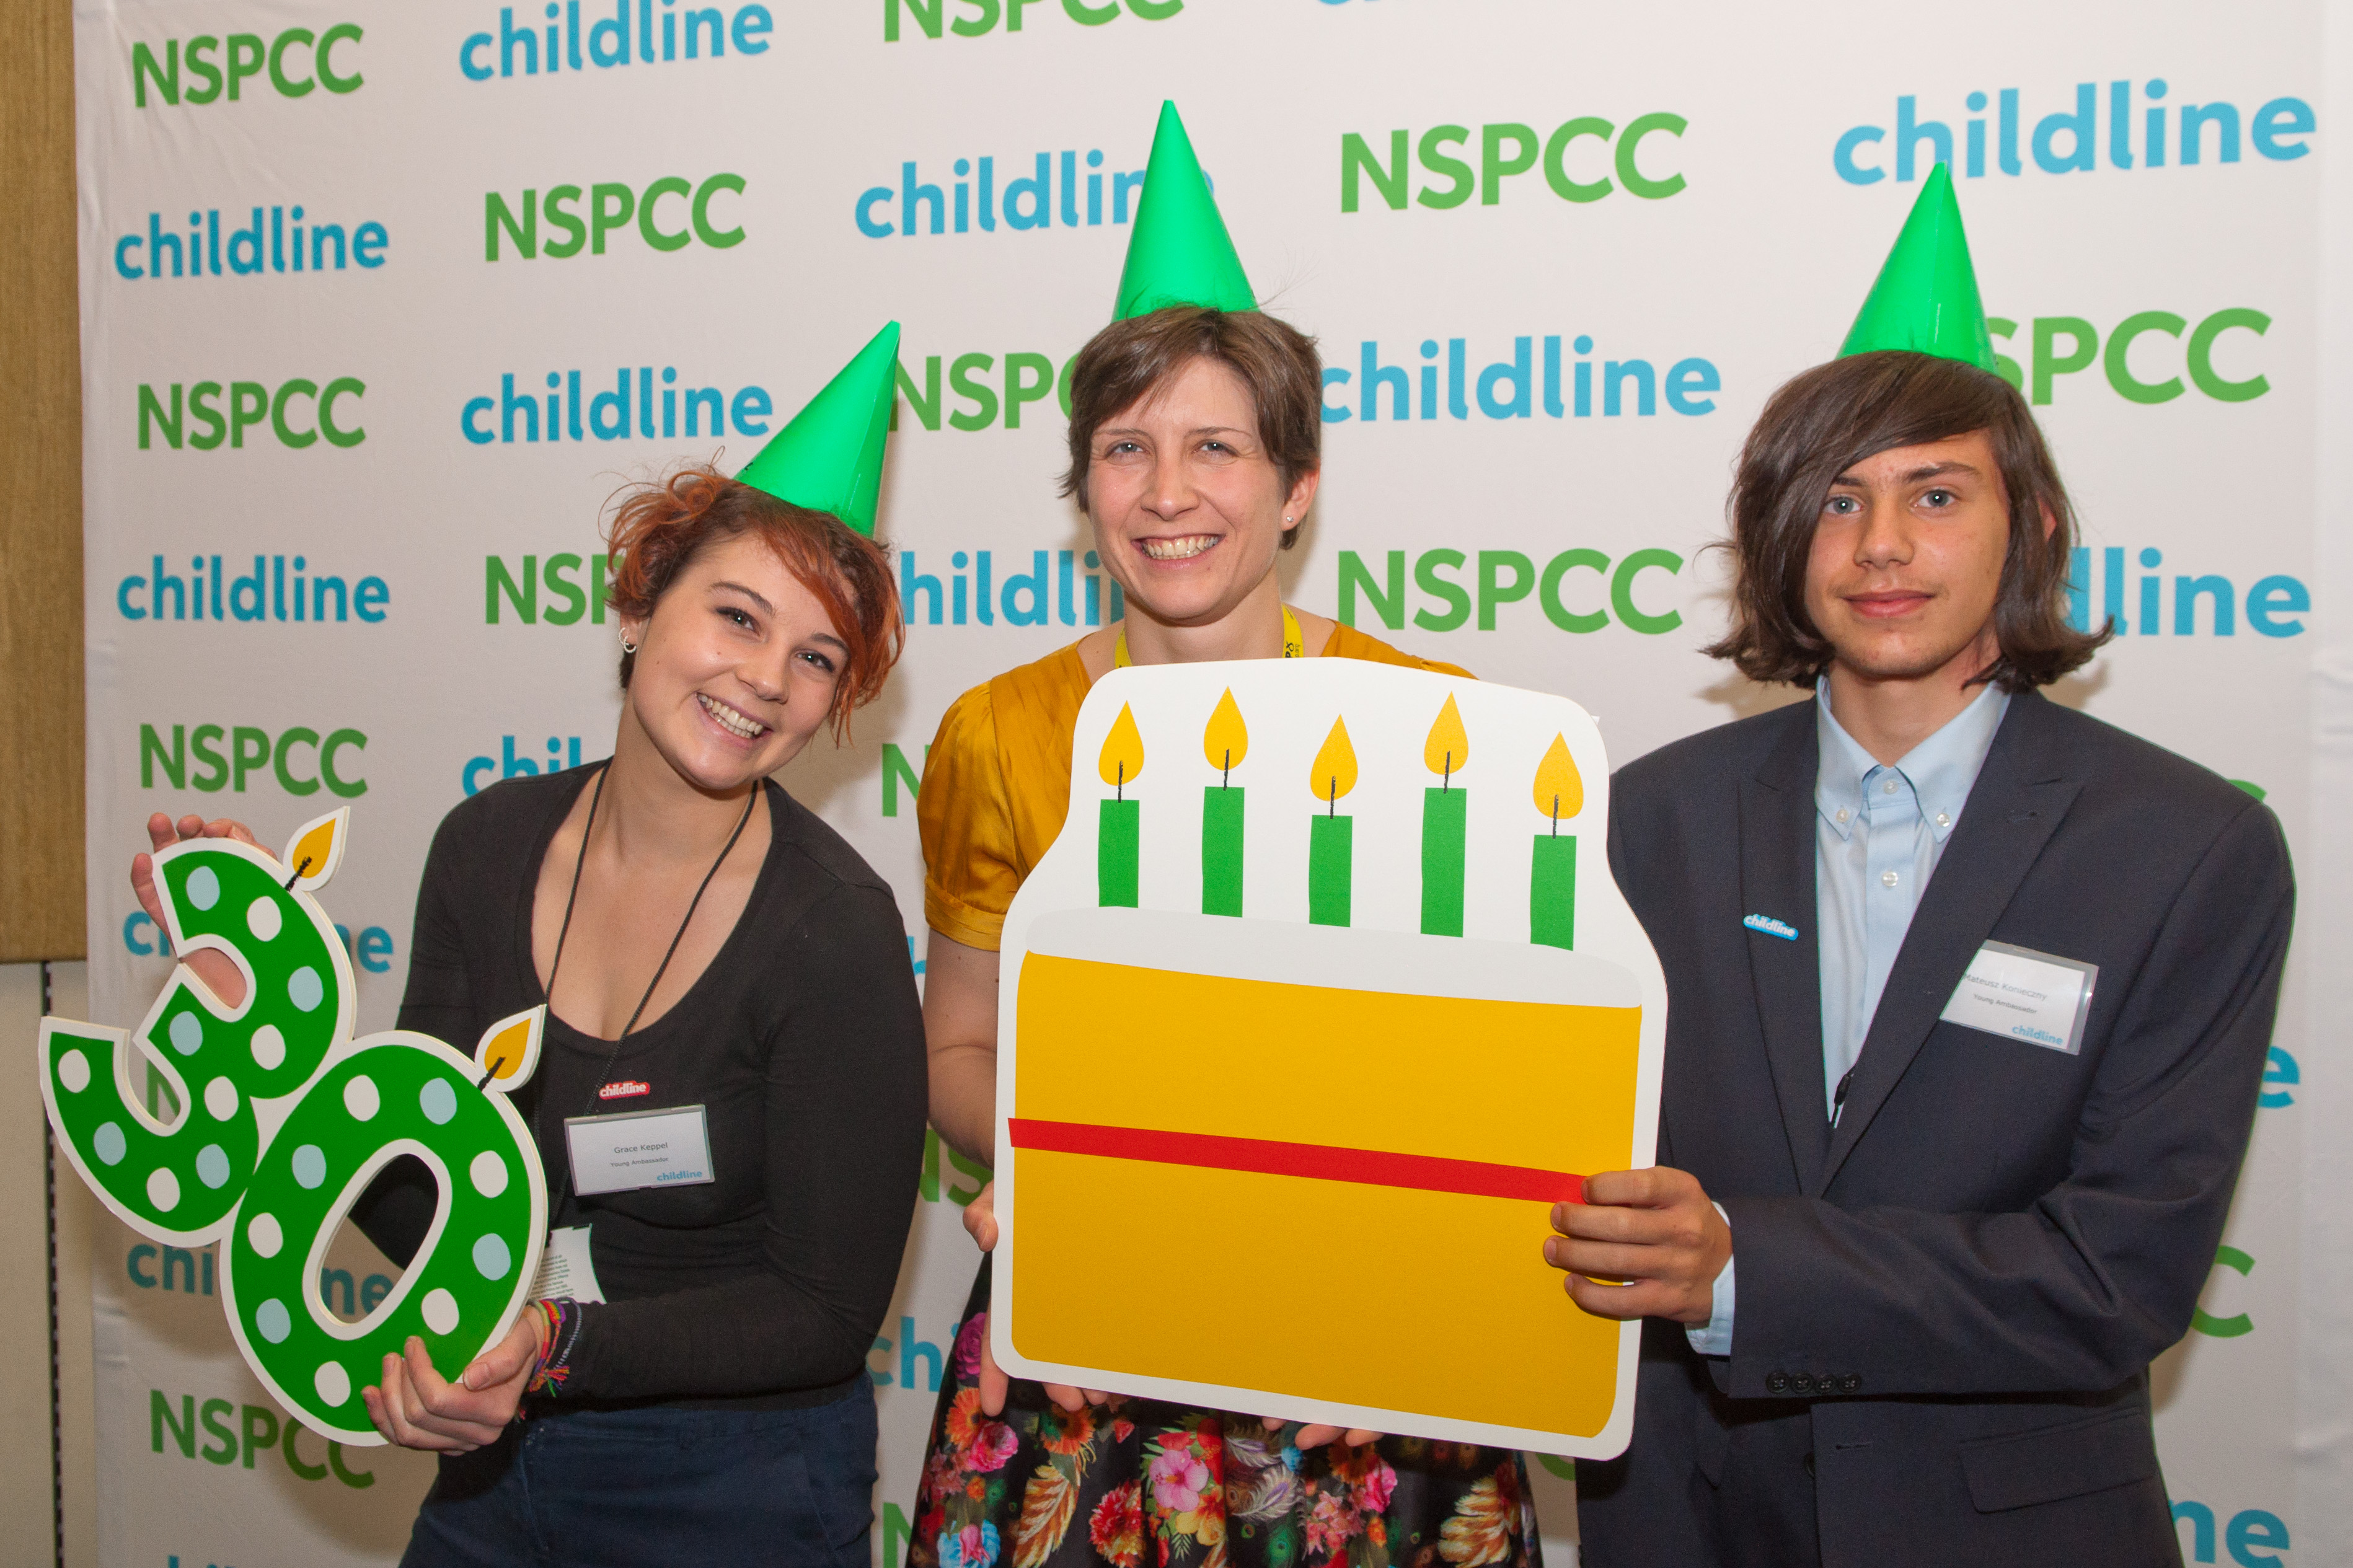 Alison Thewliss MP celebrates 30 years of Childline